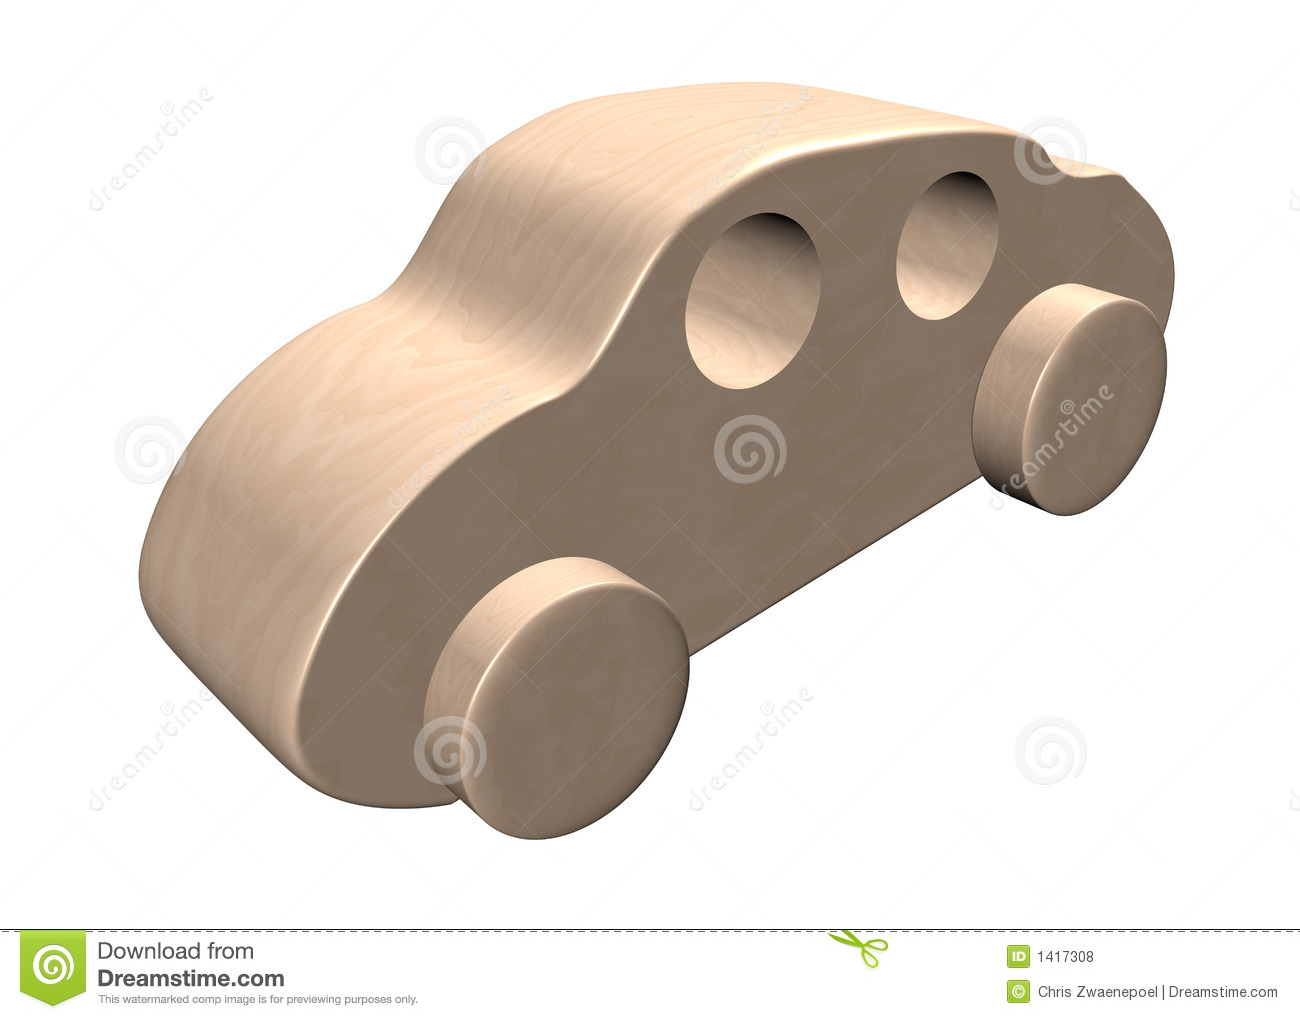 Wooden Toy Car Royalty Free Stock Photos - Image: 1417308